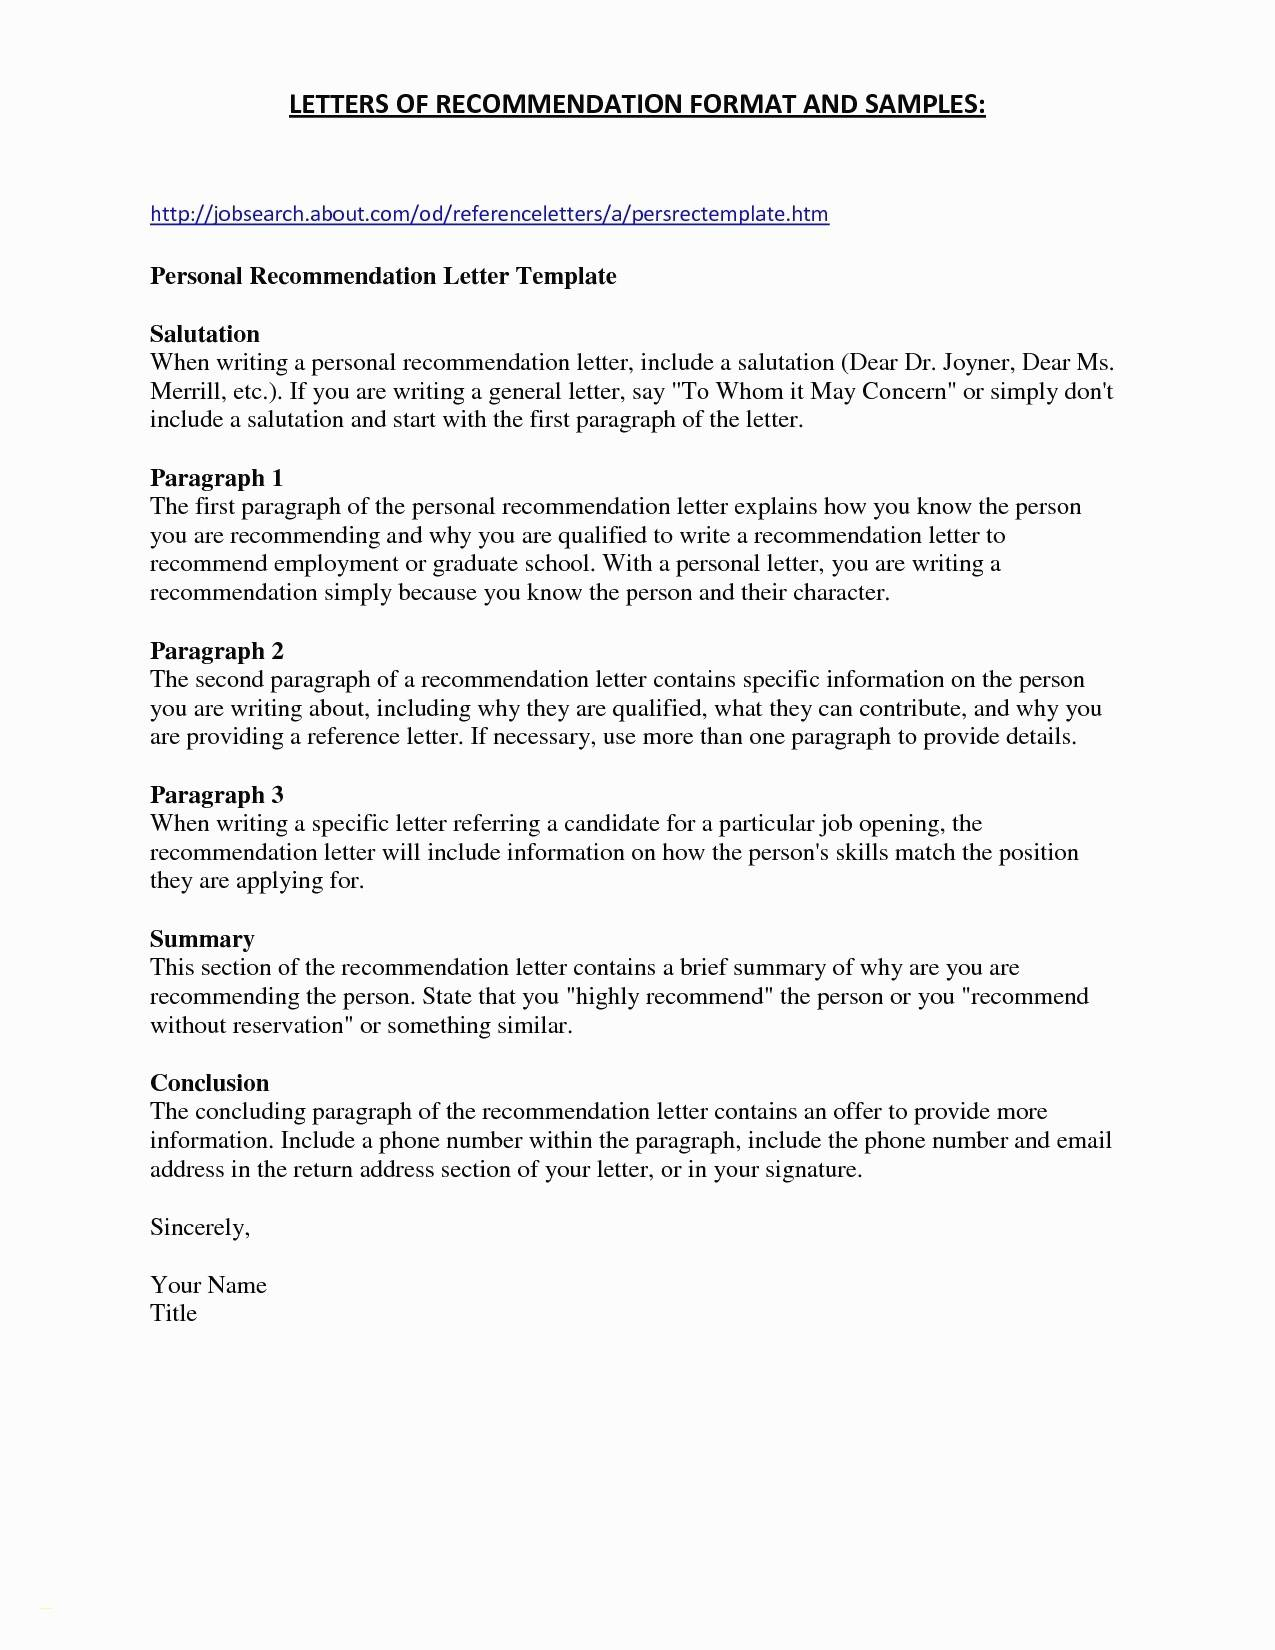 free letter of recommendation template Collection-Web Developer Resume Sample Sample Resume for Agriculture Graduates Elegant Web Developer Resume 13-q